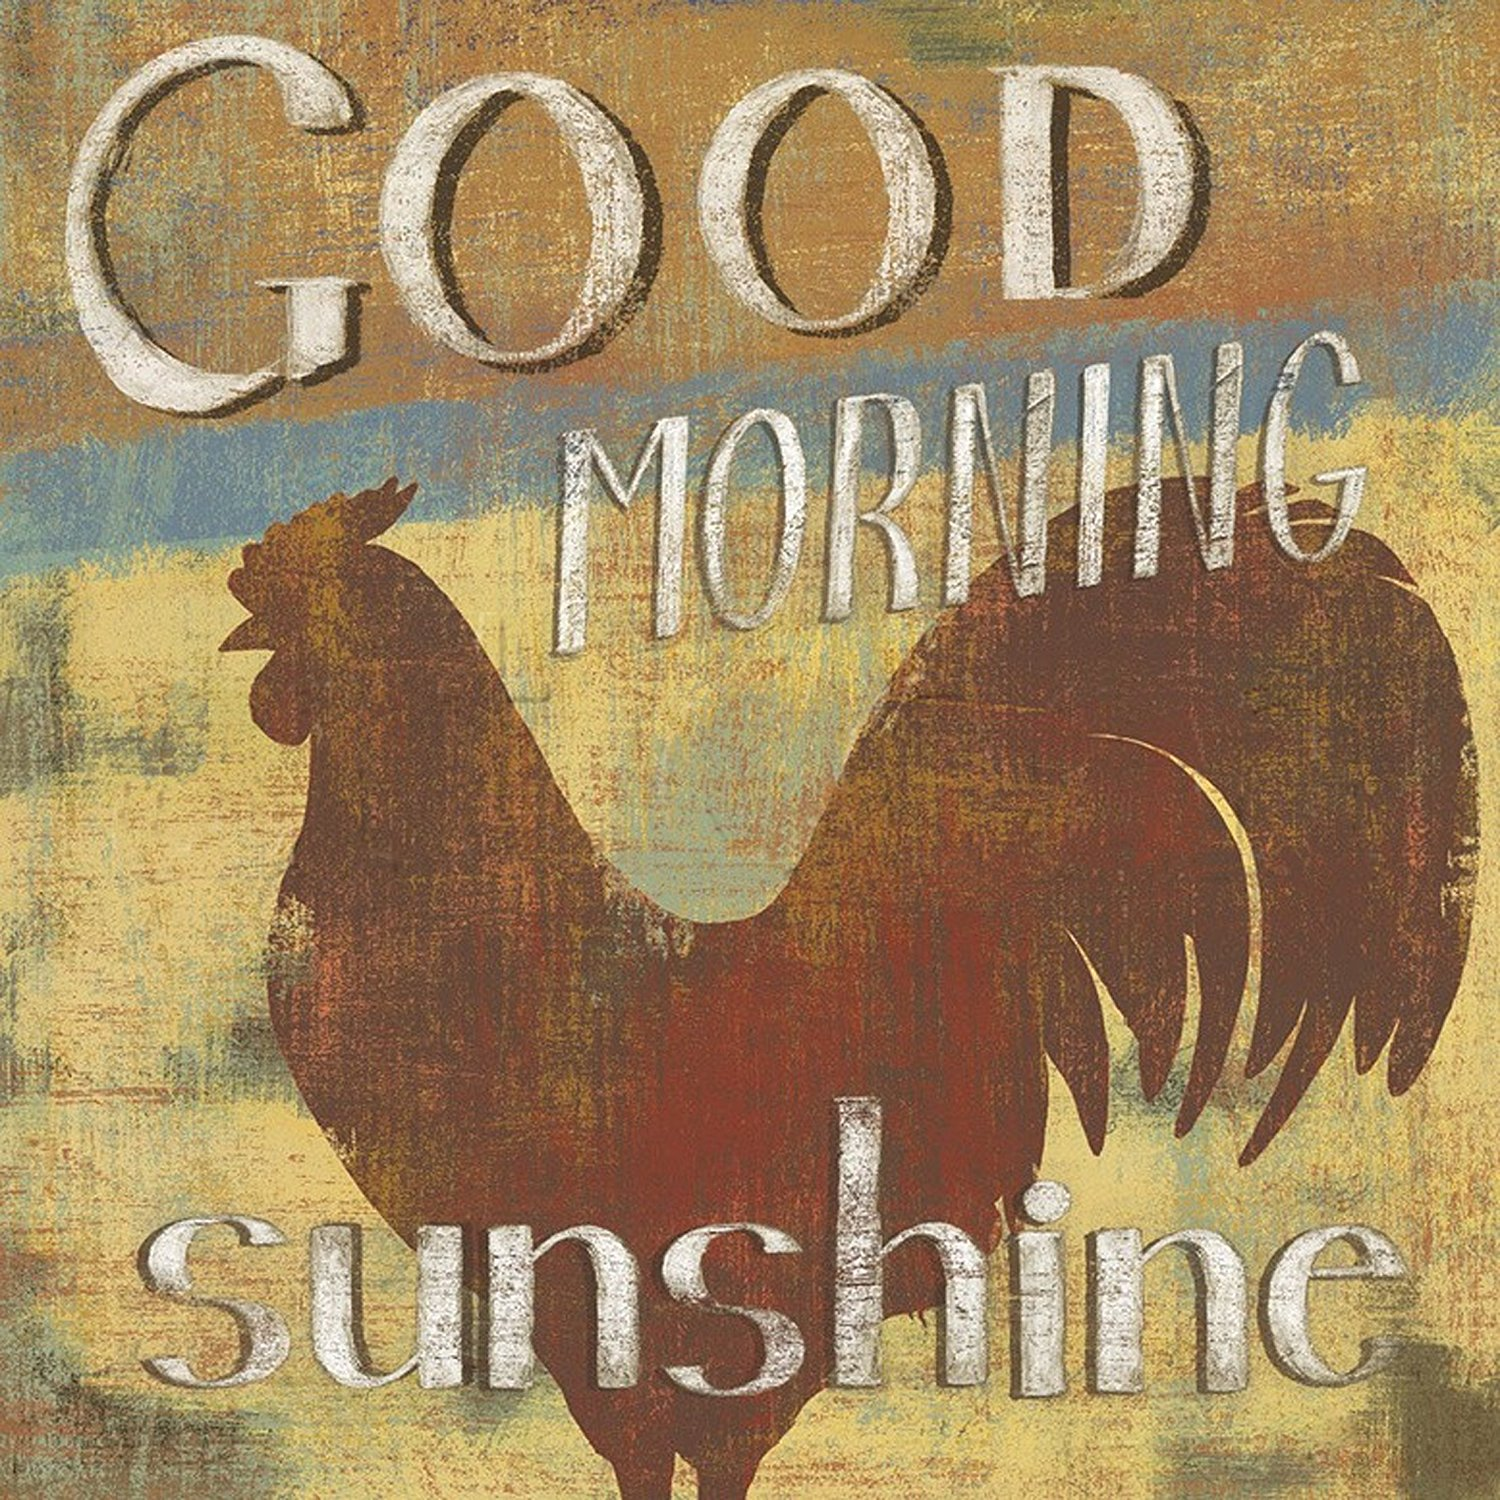 "Barnyard Designs 'Good Morning Sunshine' Rooster Retro Vintage Tin Bar Sign Country Home Decor 11"" x 11"""